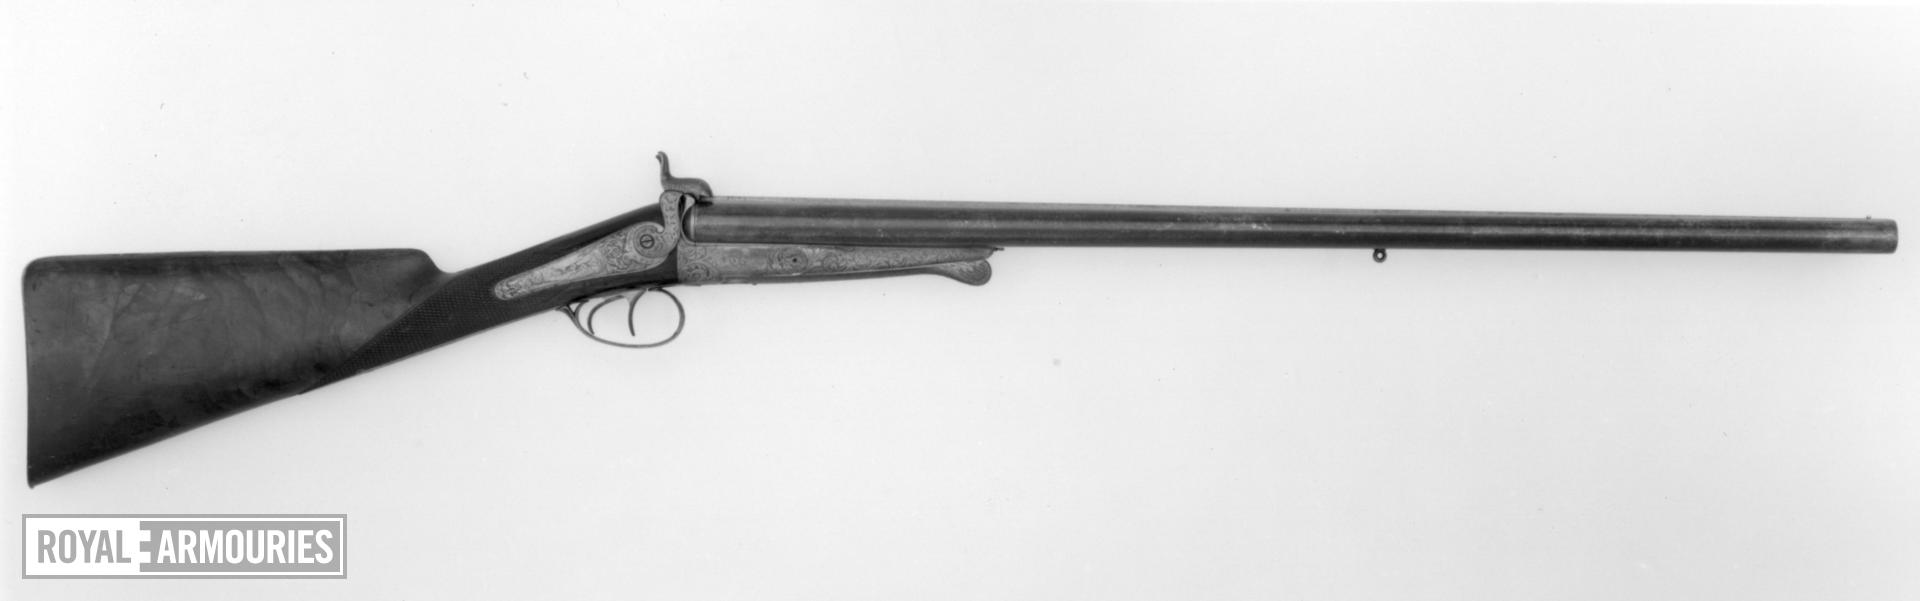 Pinfire breech-loading double-barrelled shotgun - By Lefaucheux Hammer gun For the Le Clerc family Retailed by Lissonde of Pau